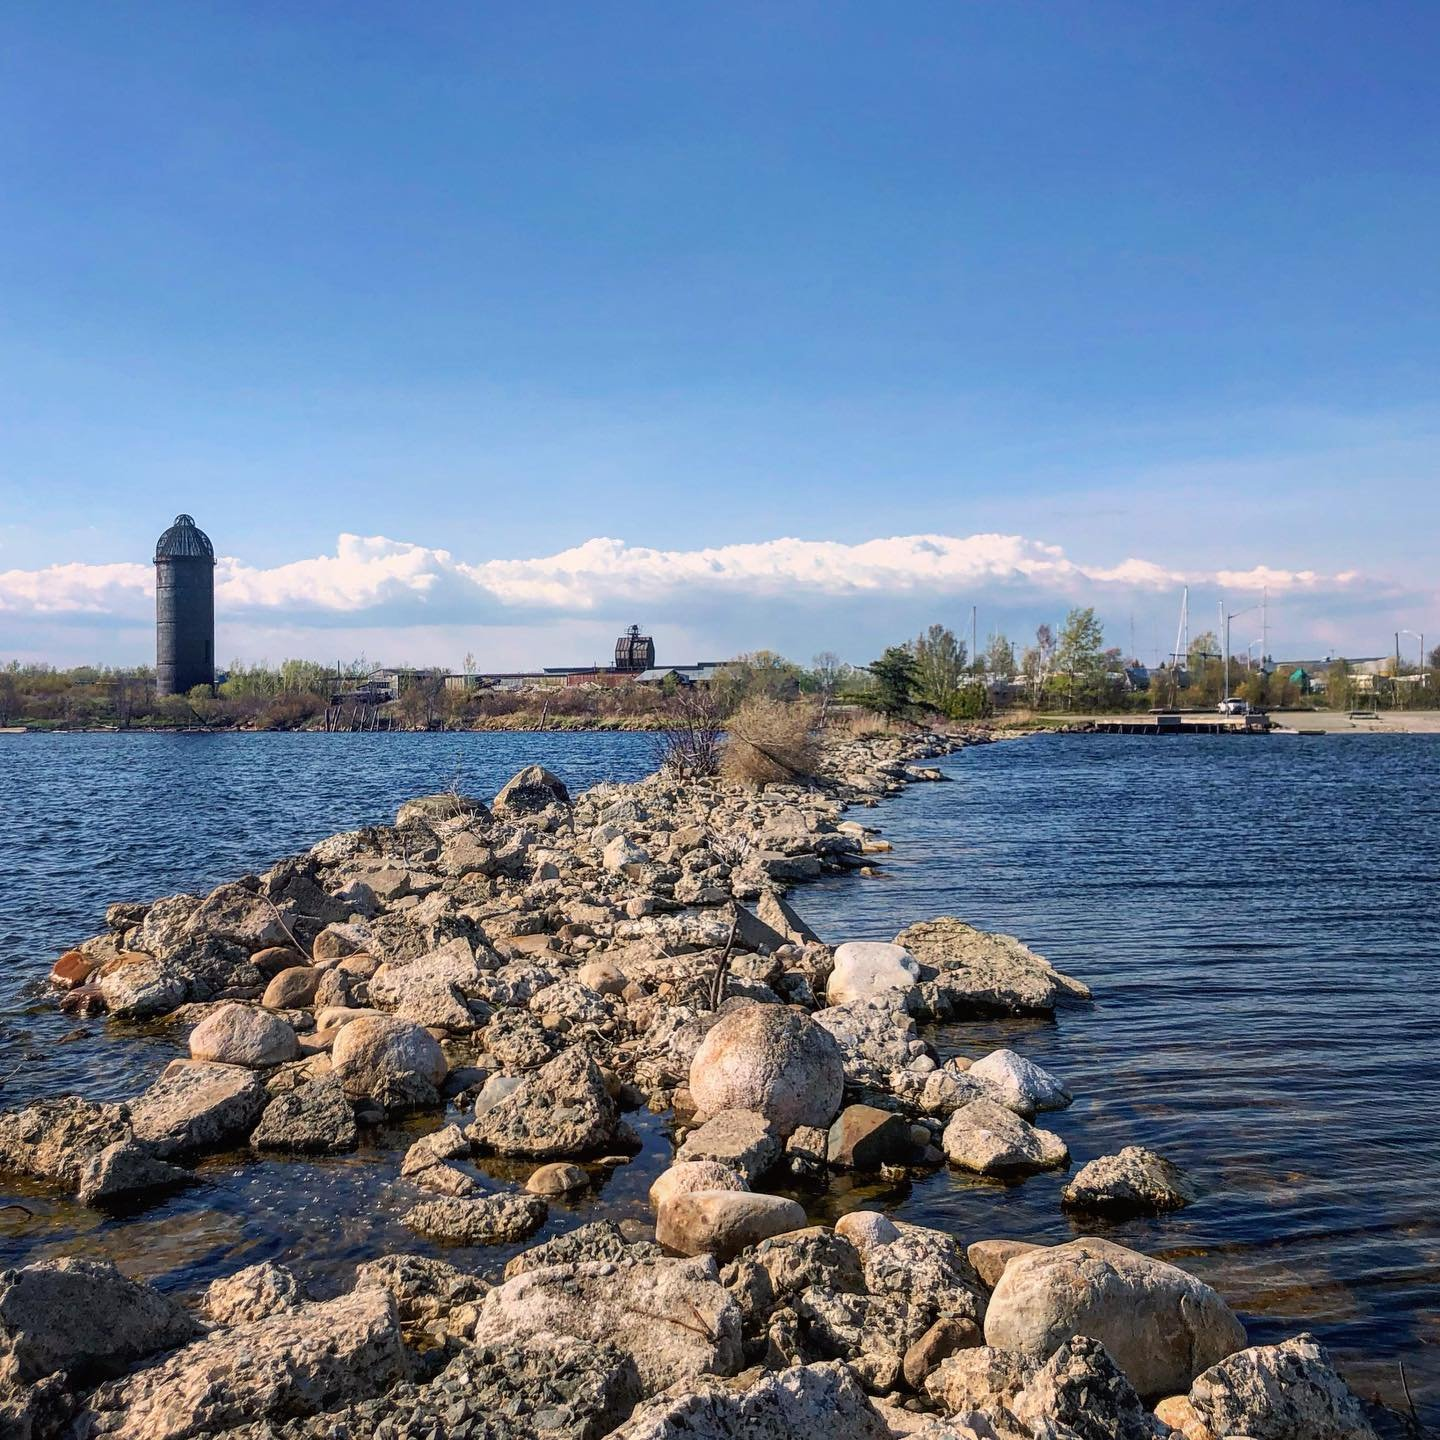 From the perspective of standing on a rocky peninsula surrrounded by water looking at the Marina on shore